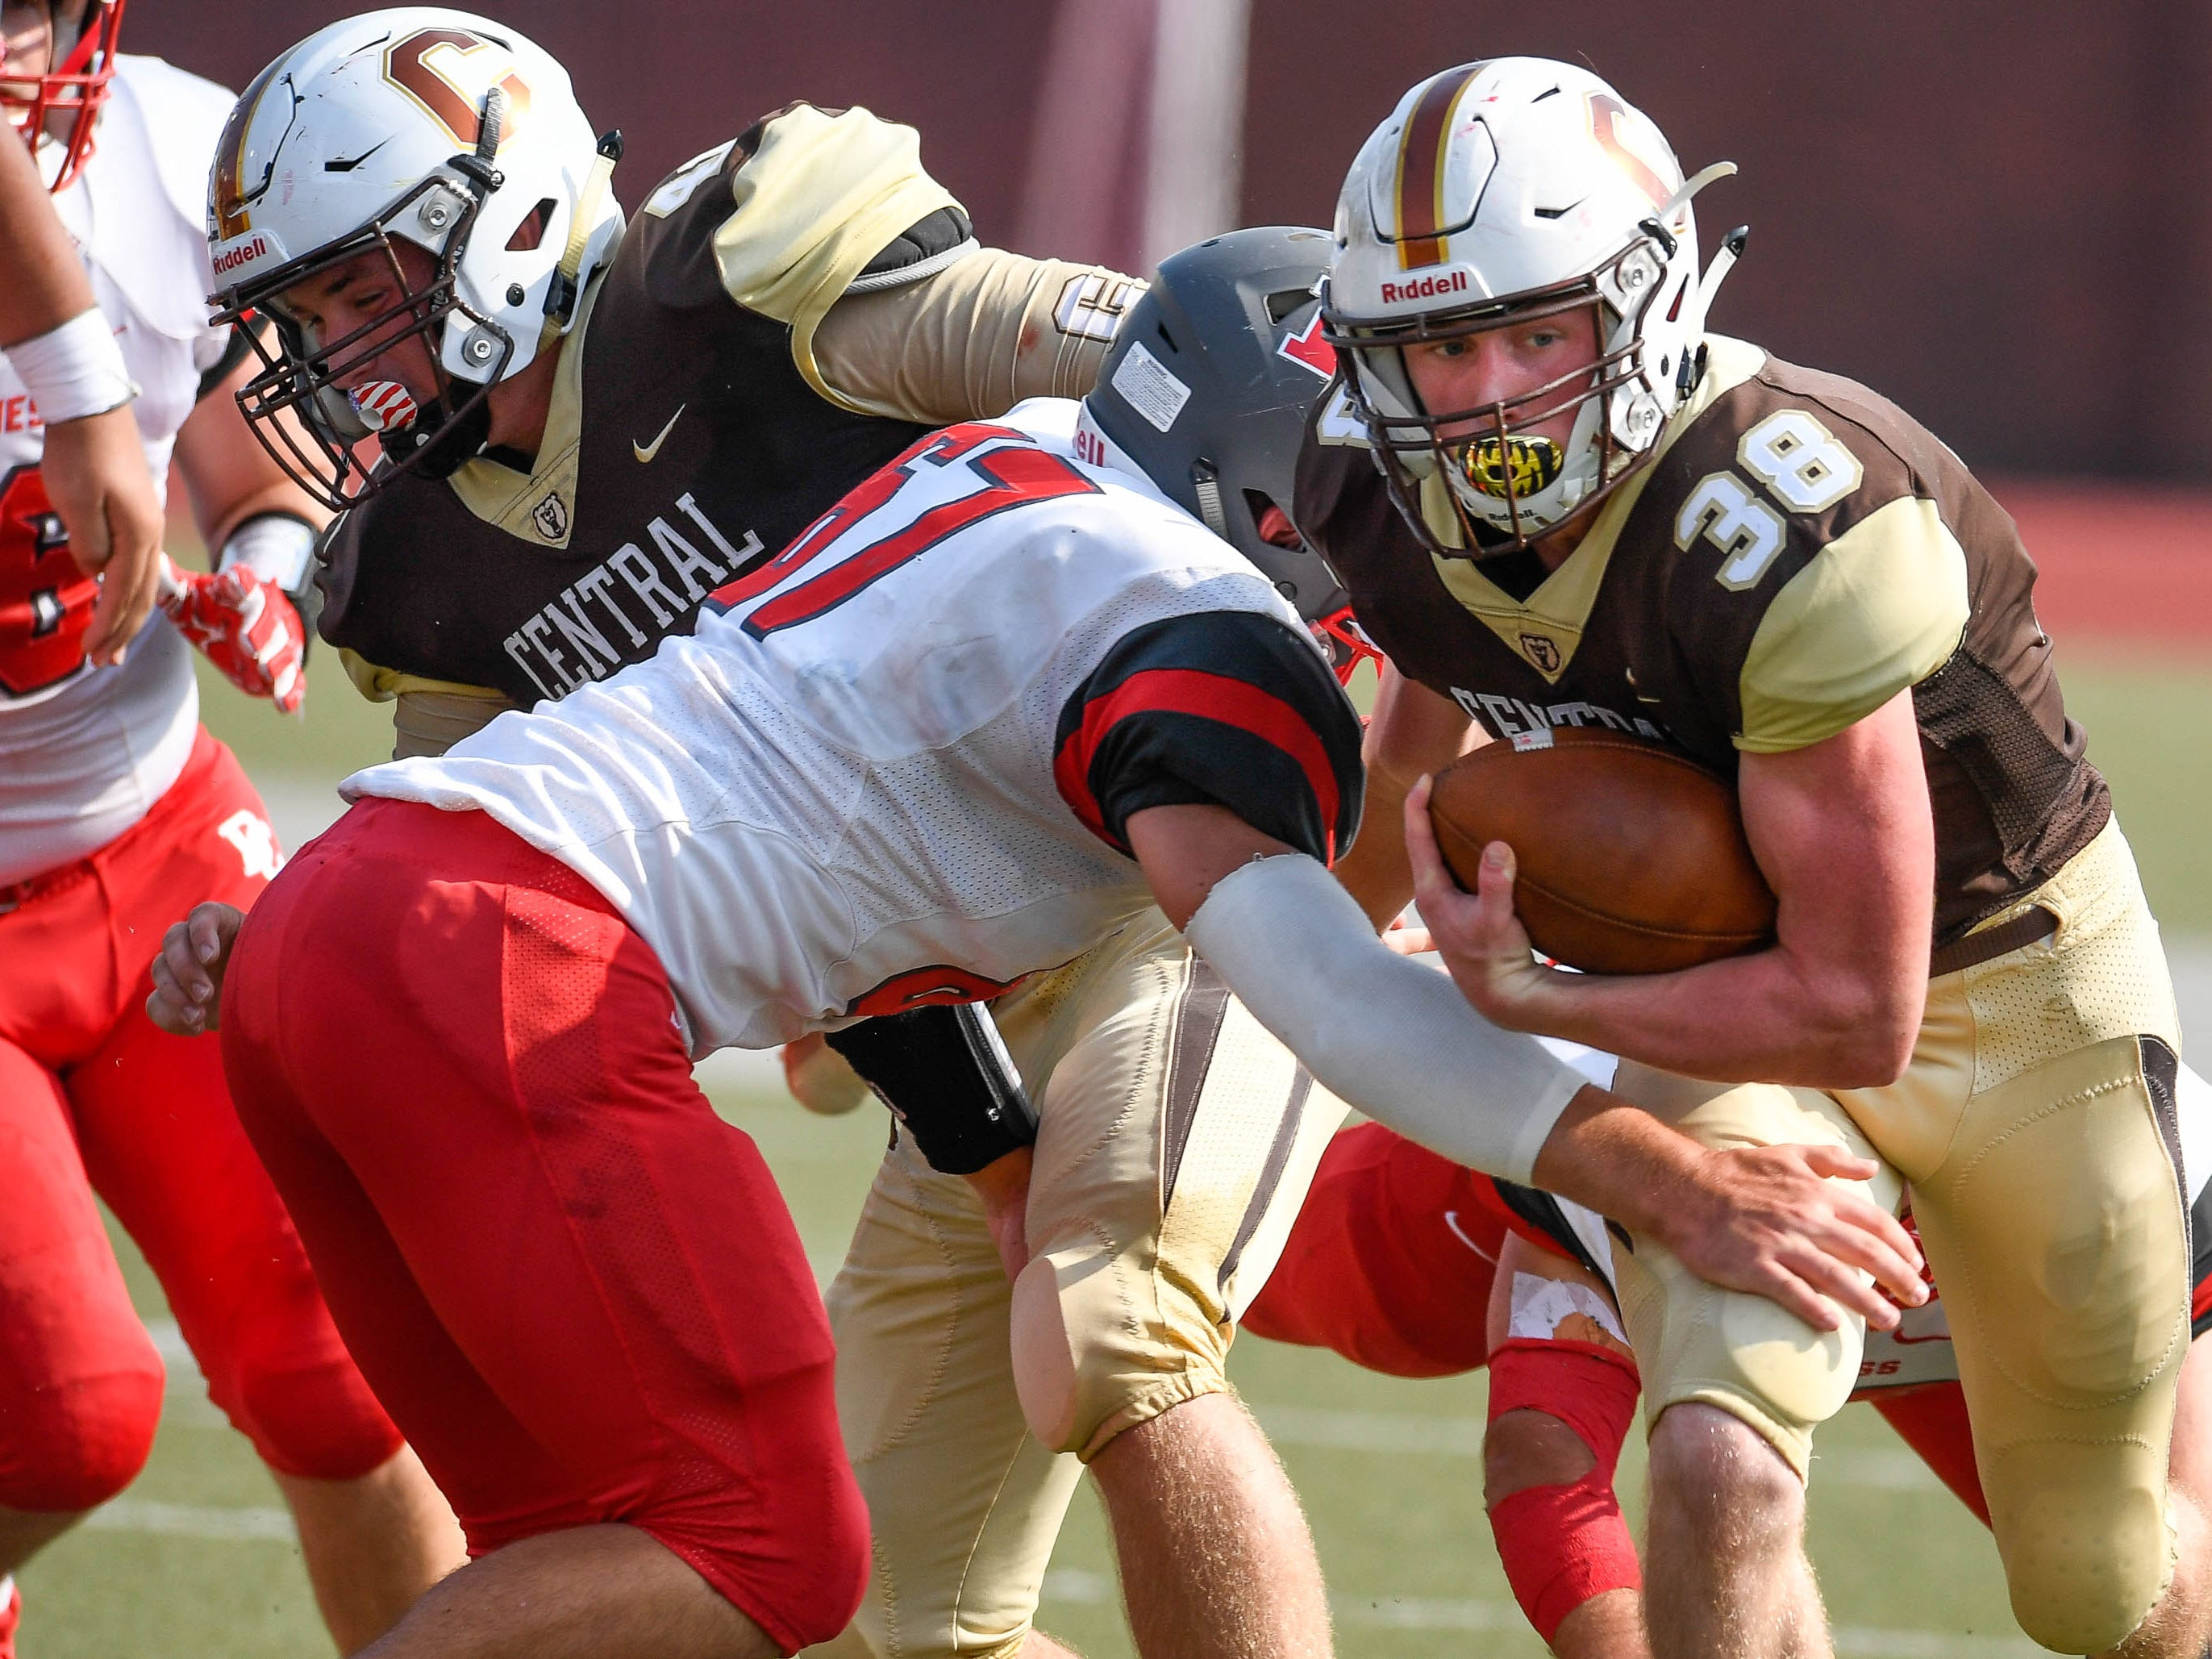 Central's Brennan Schutte (38) pushes past Daviess County's Cameron Duvall (67) as the Daviess County Panthers play the Evansville Central Bears at the Border Bowl played at Enlow Field in Evansville Saturday, August 25, 2018.